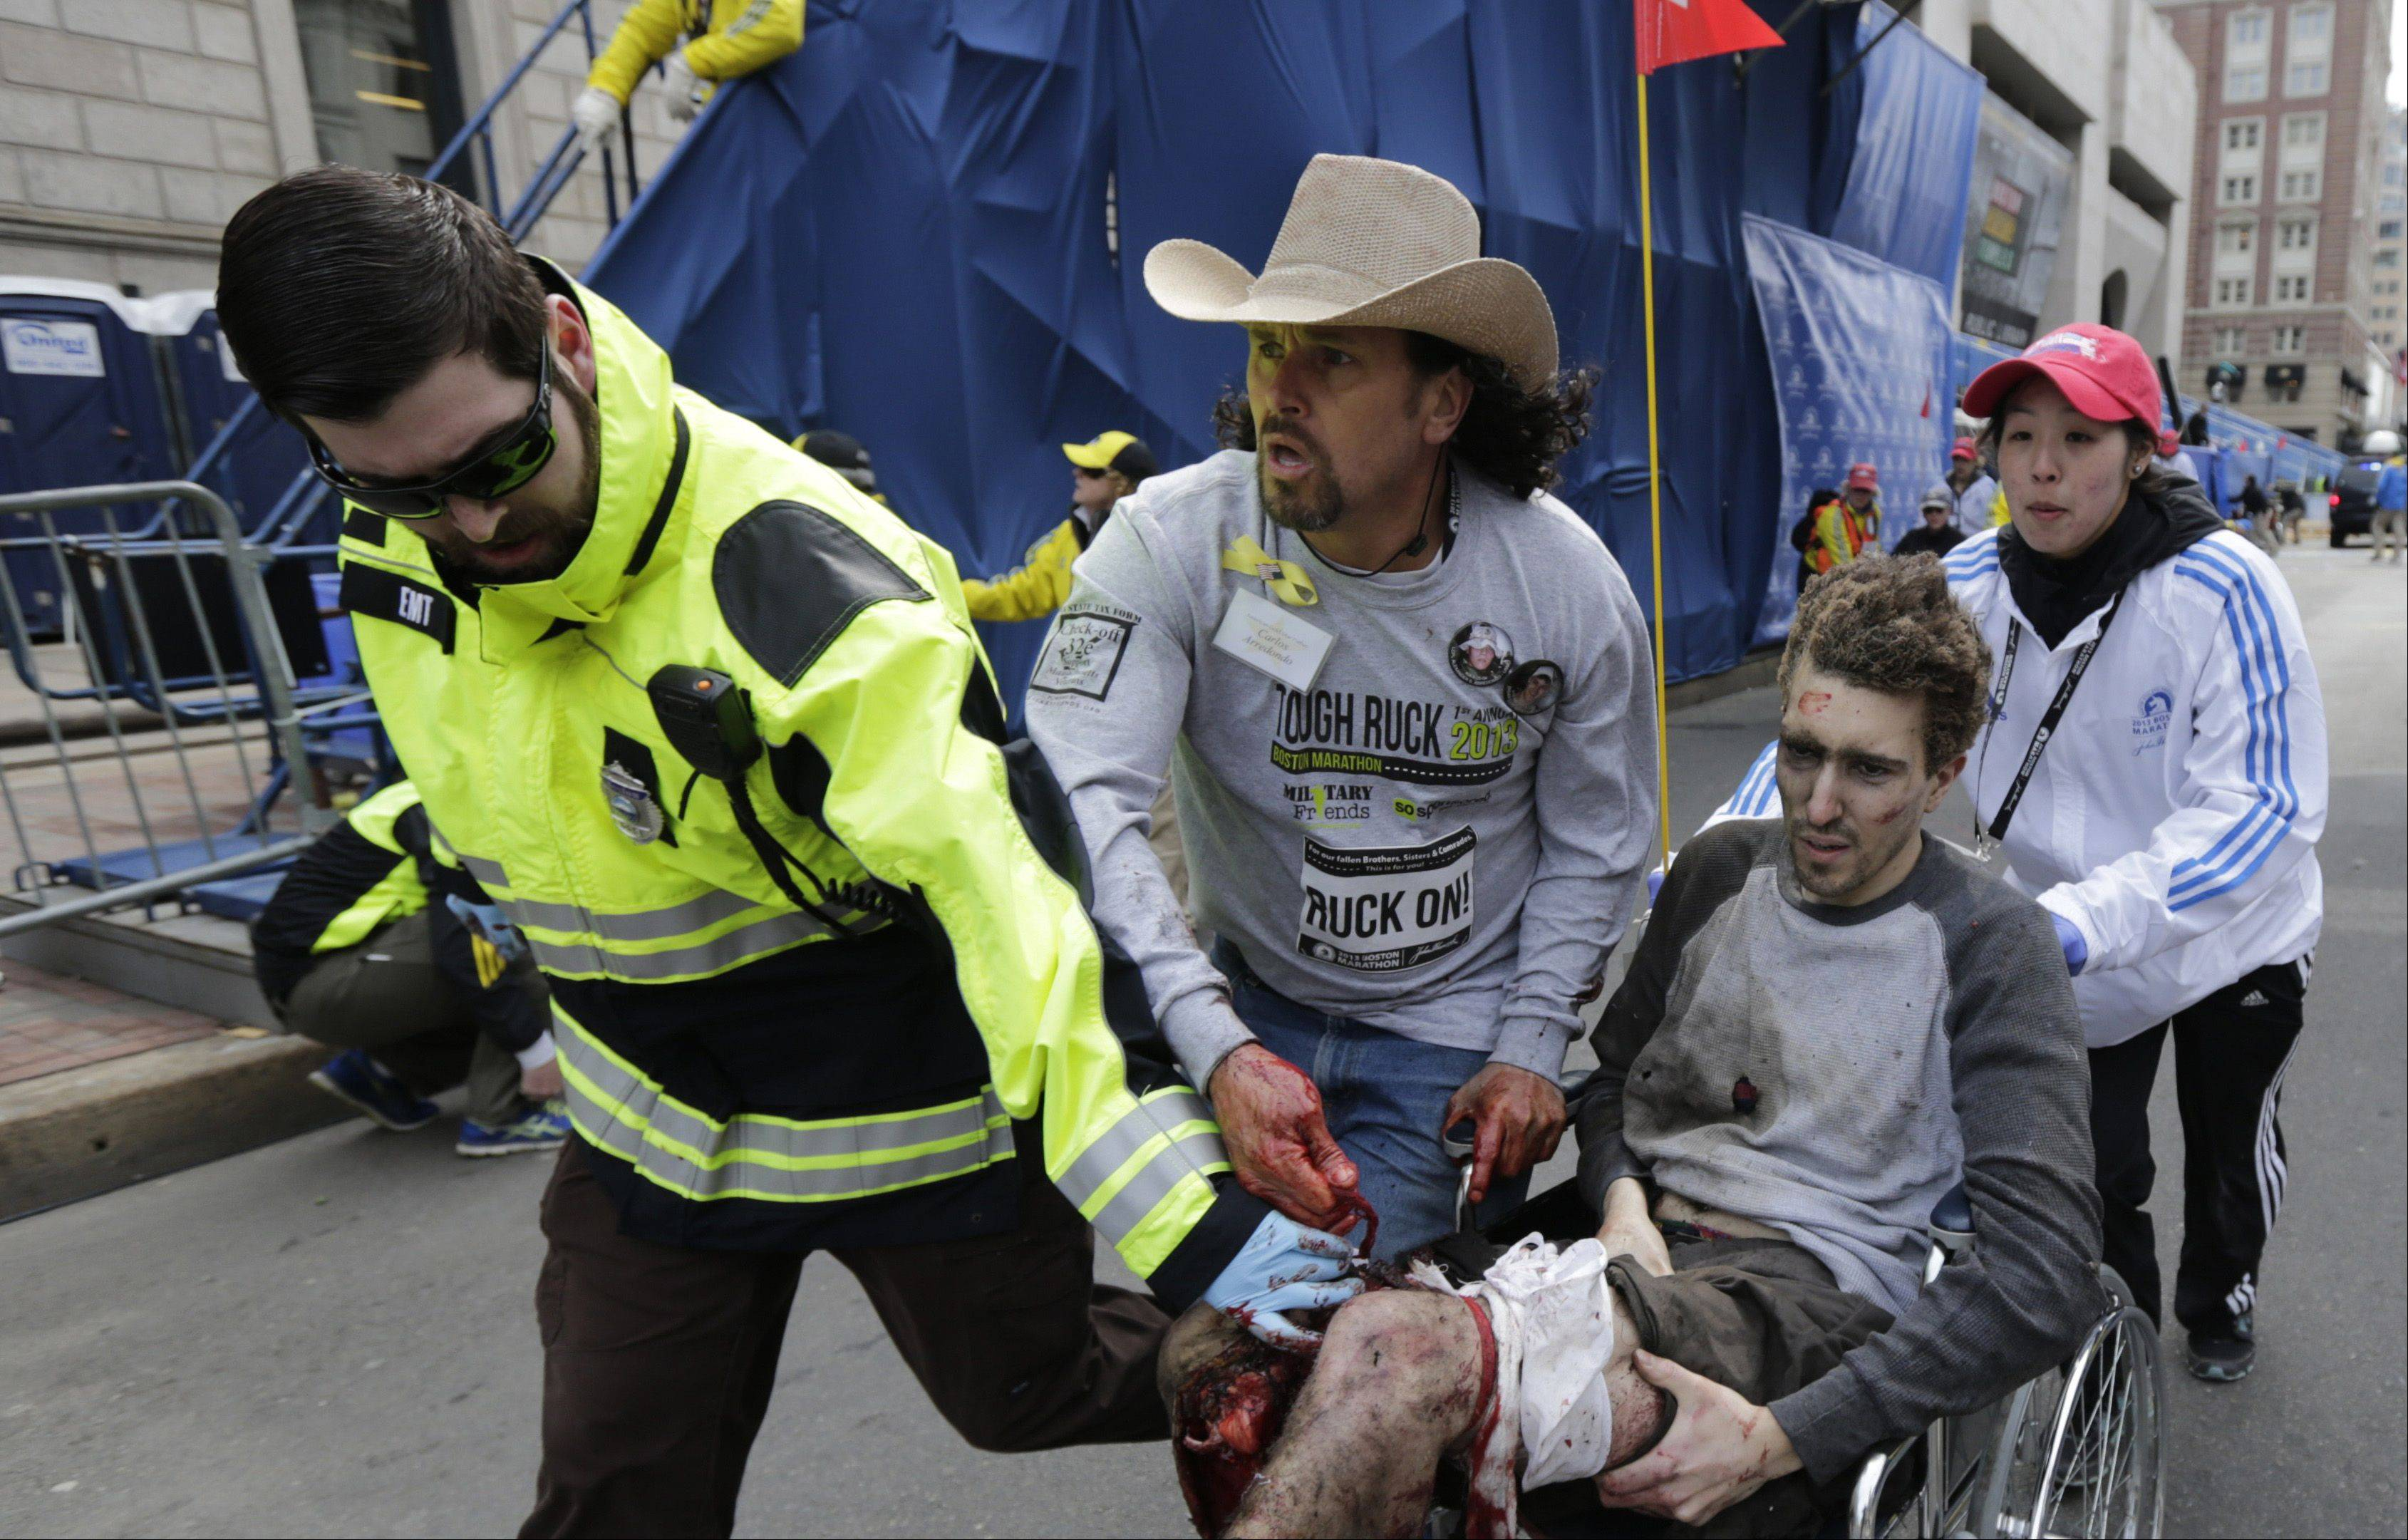 An emergency responder and volunteers, including Carlos Arredondo in the cowboy hat, push Jeff Bauman in a wheelchair after he was injured in an explosion near the finish line of the Boston Marathon Monday, April 15, 2013 in Boston.